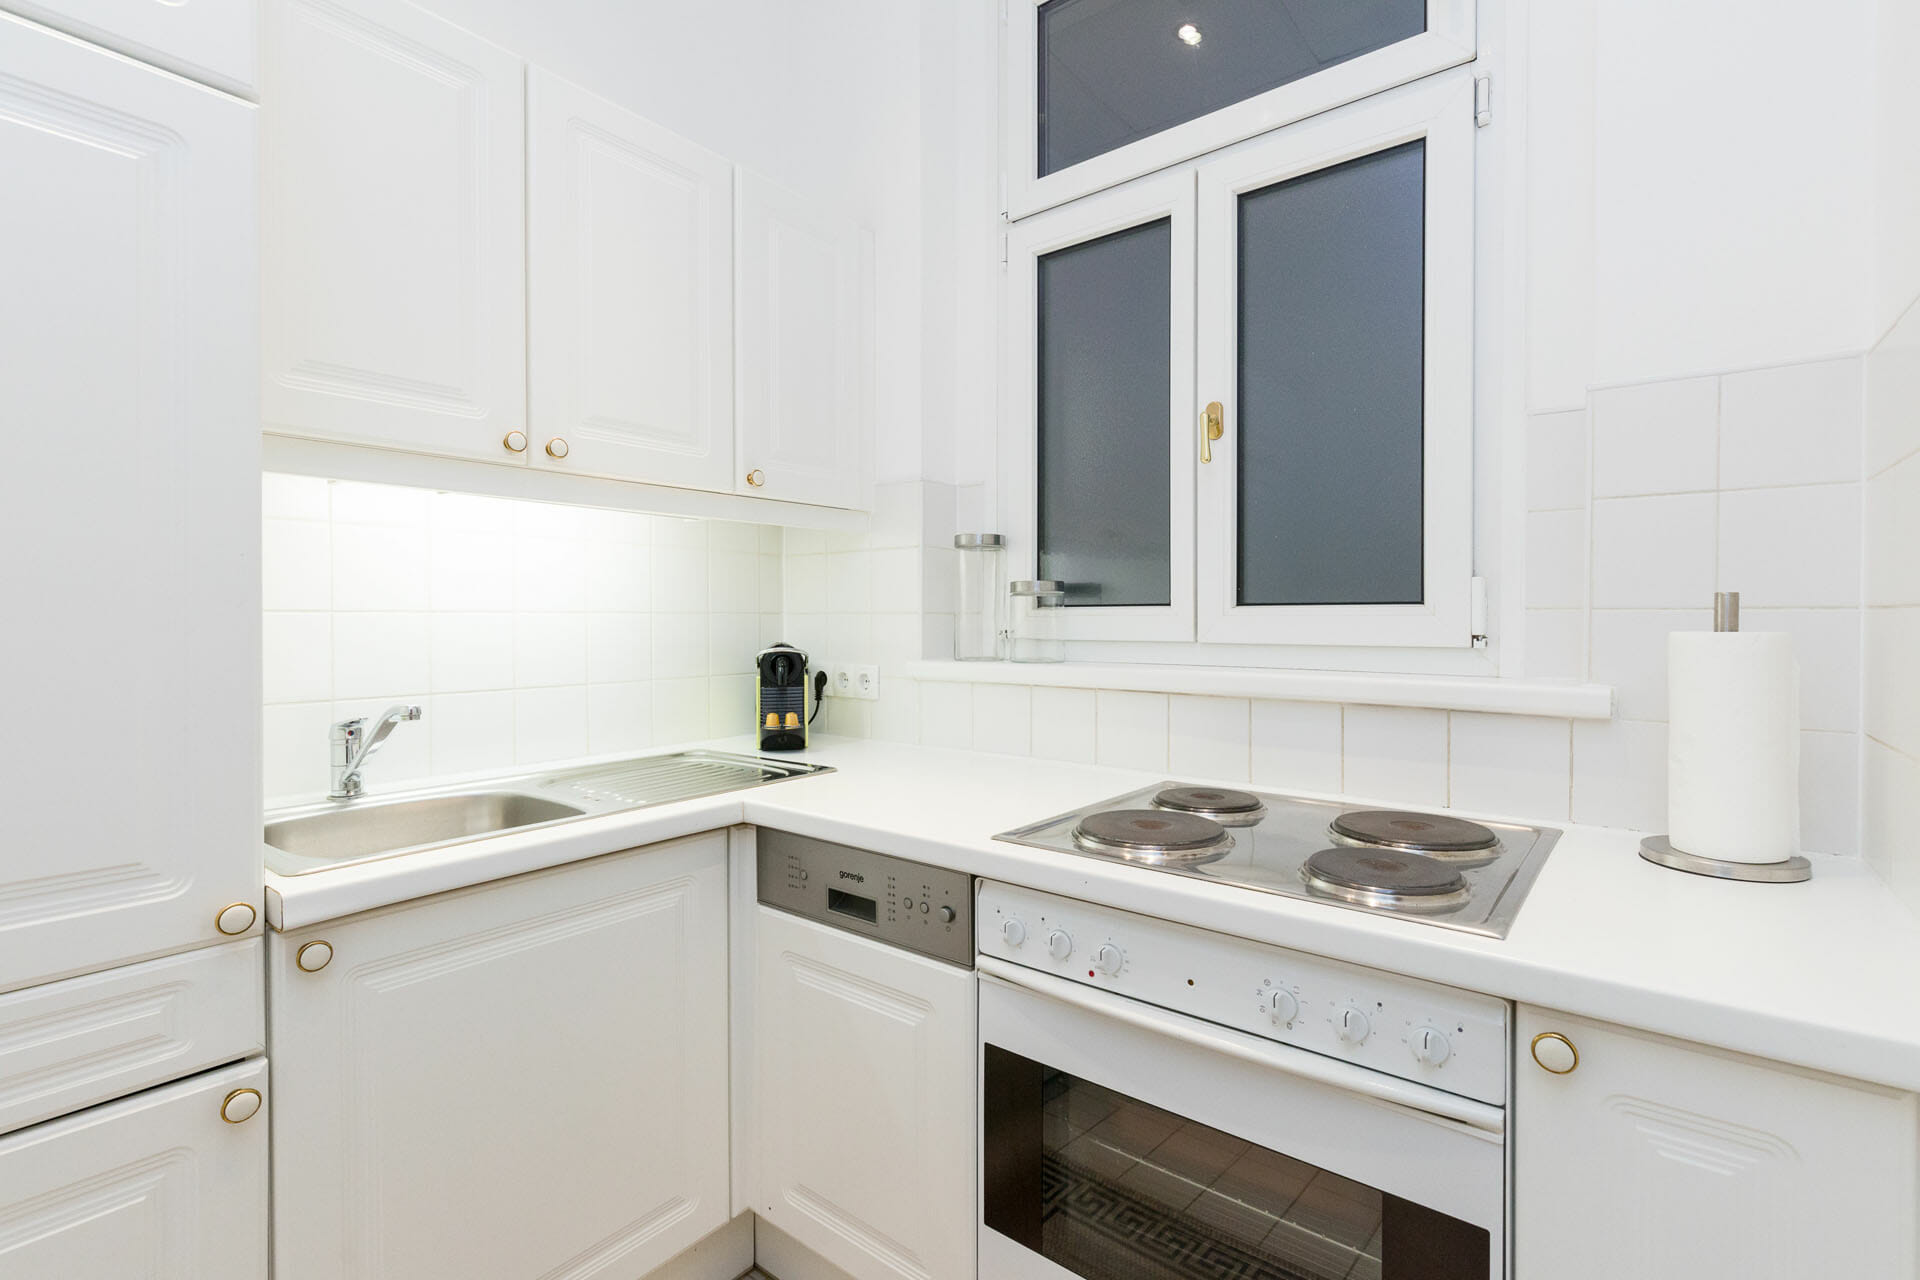 Prestige Apartments in Vienna Austria.The apartment is conveniently located in heart of the 9th district and within a stroll to the city centre.